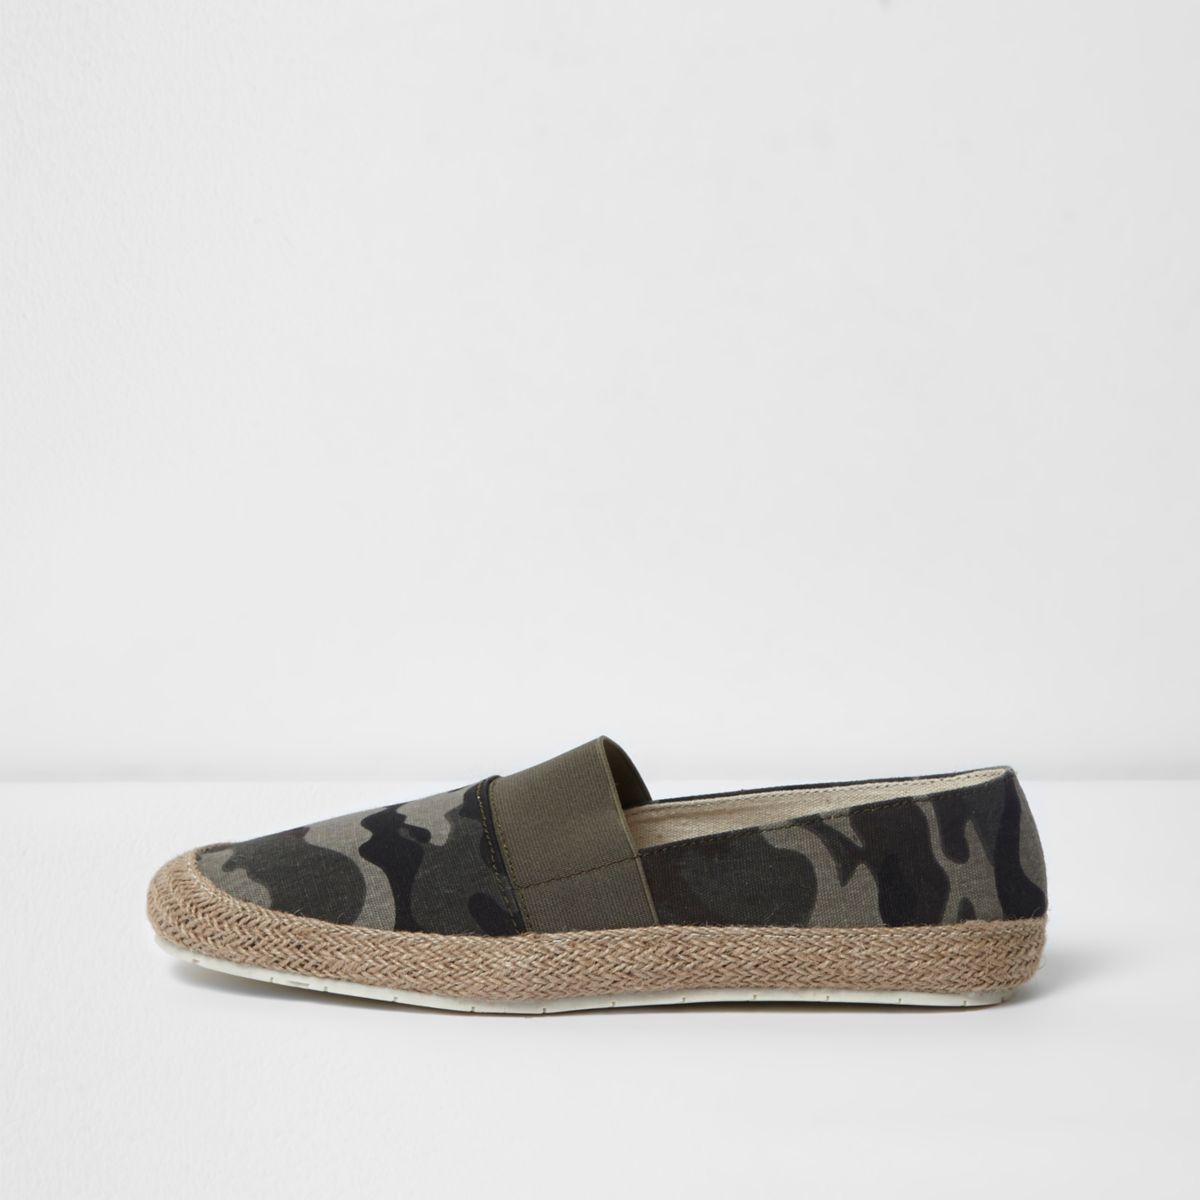 Khaki green canvas espadrilles